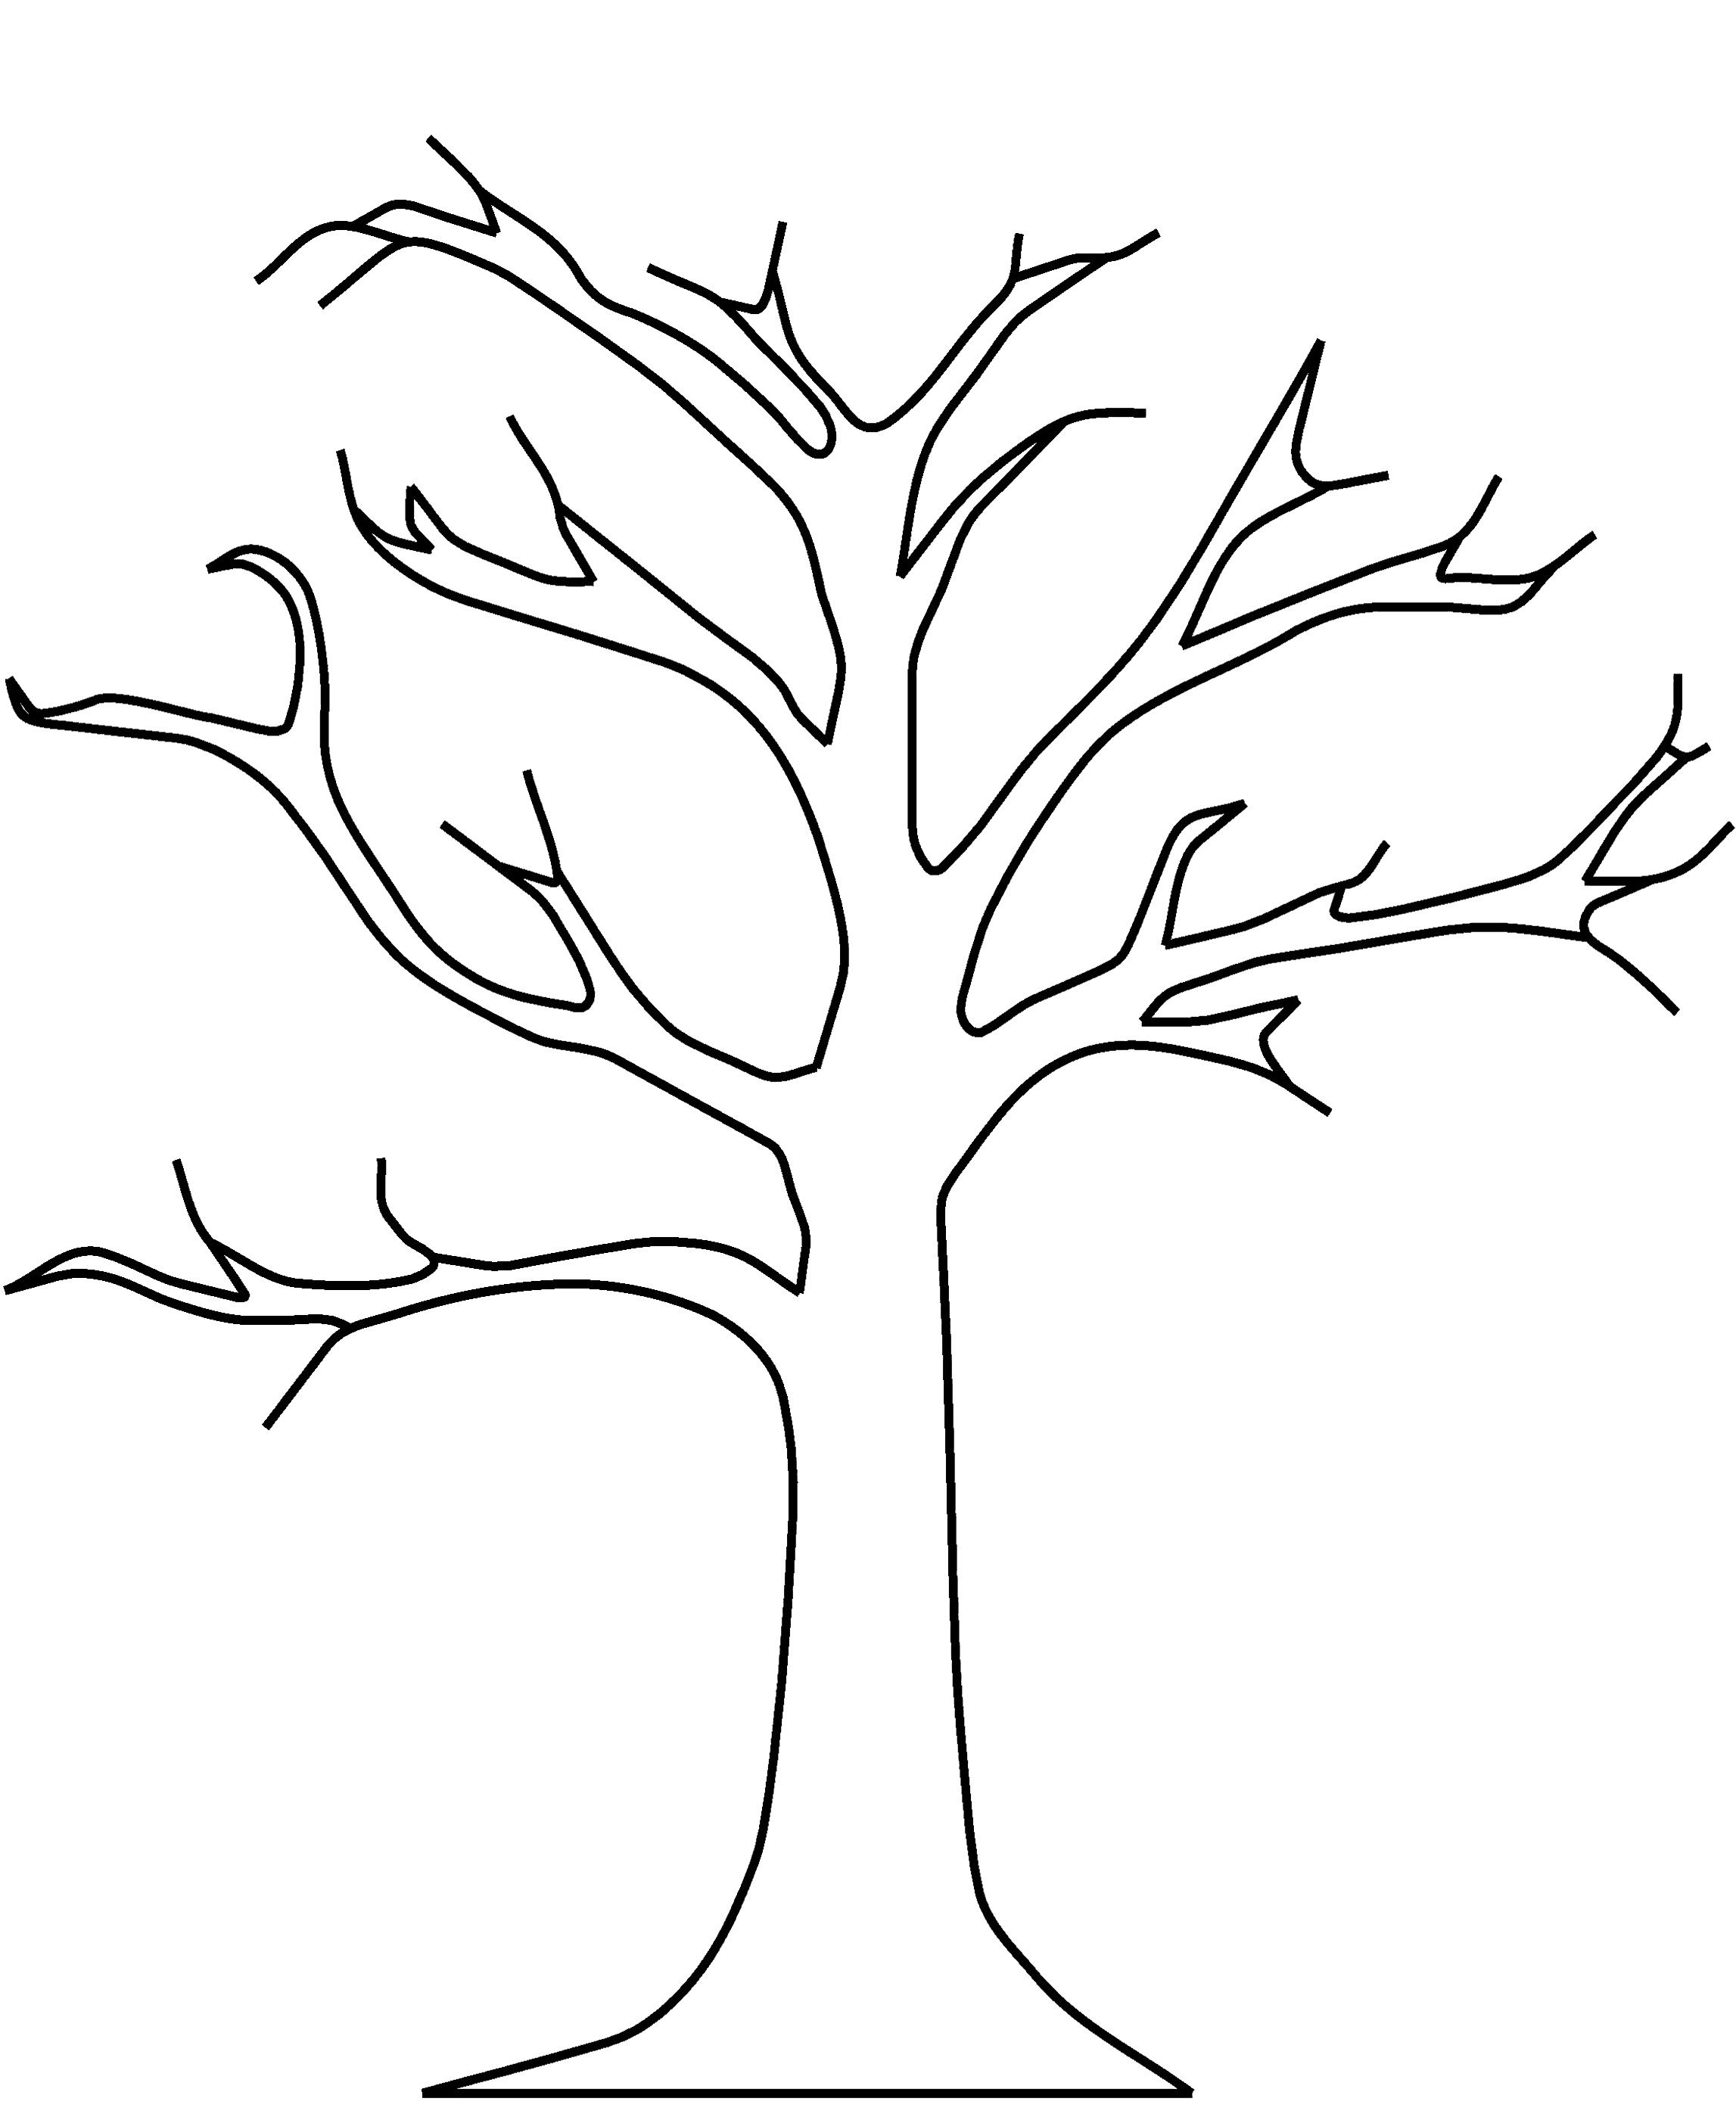 Best Photos of Tree Without Leaves Coloring Book - Trees without ...